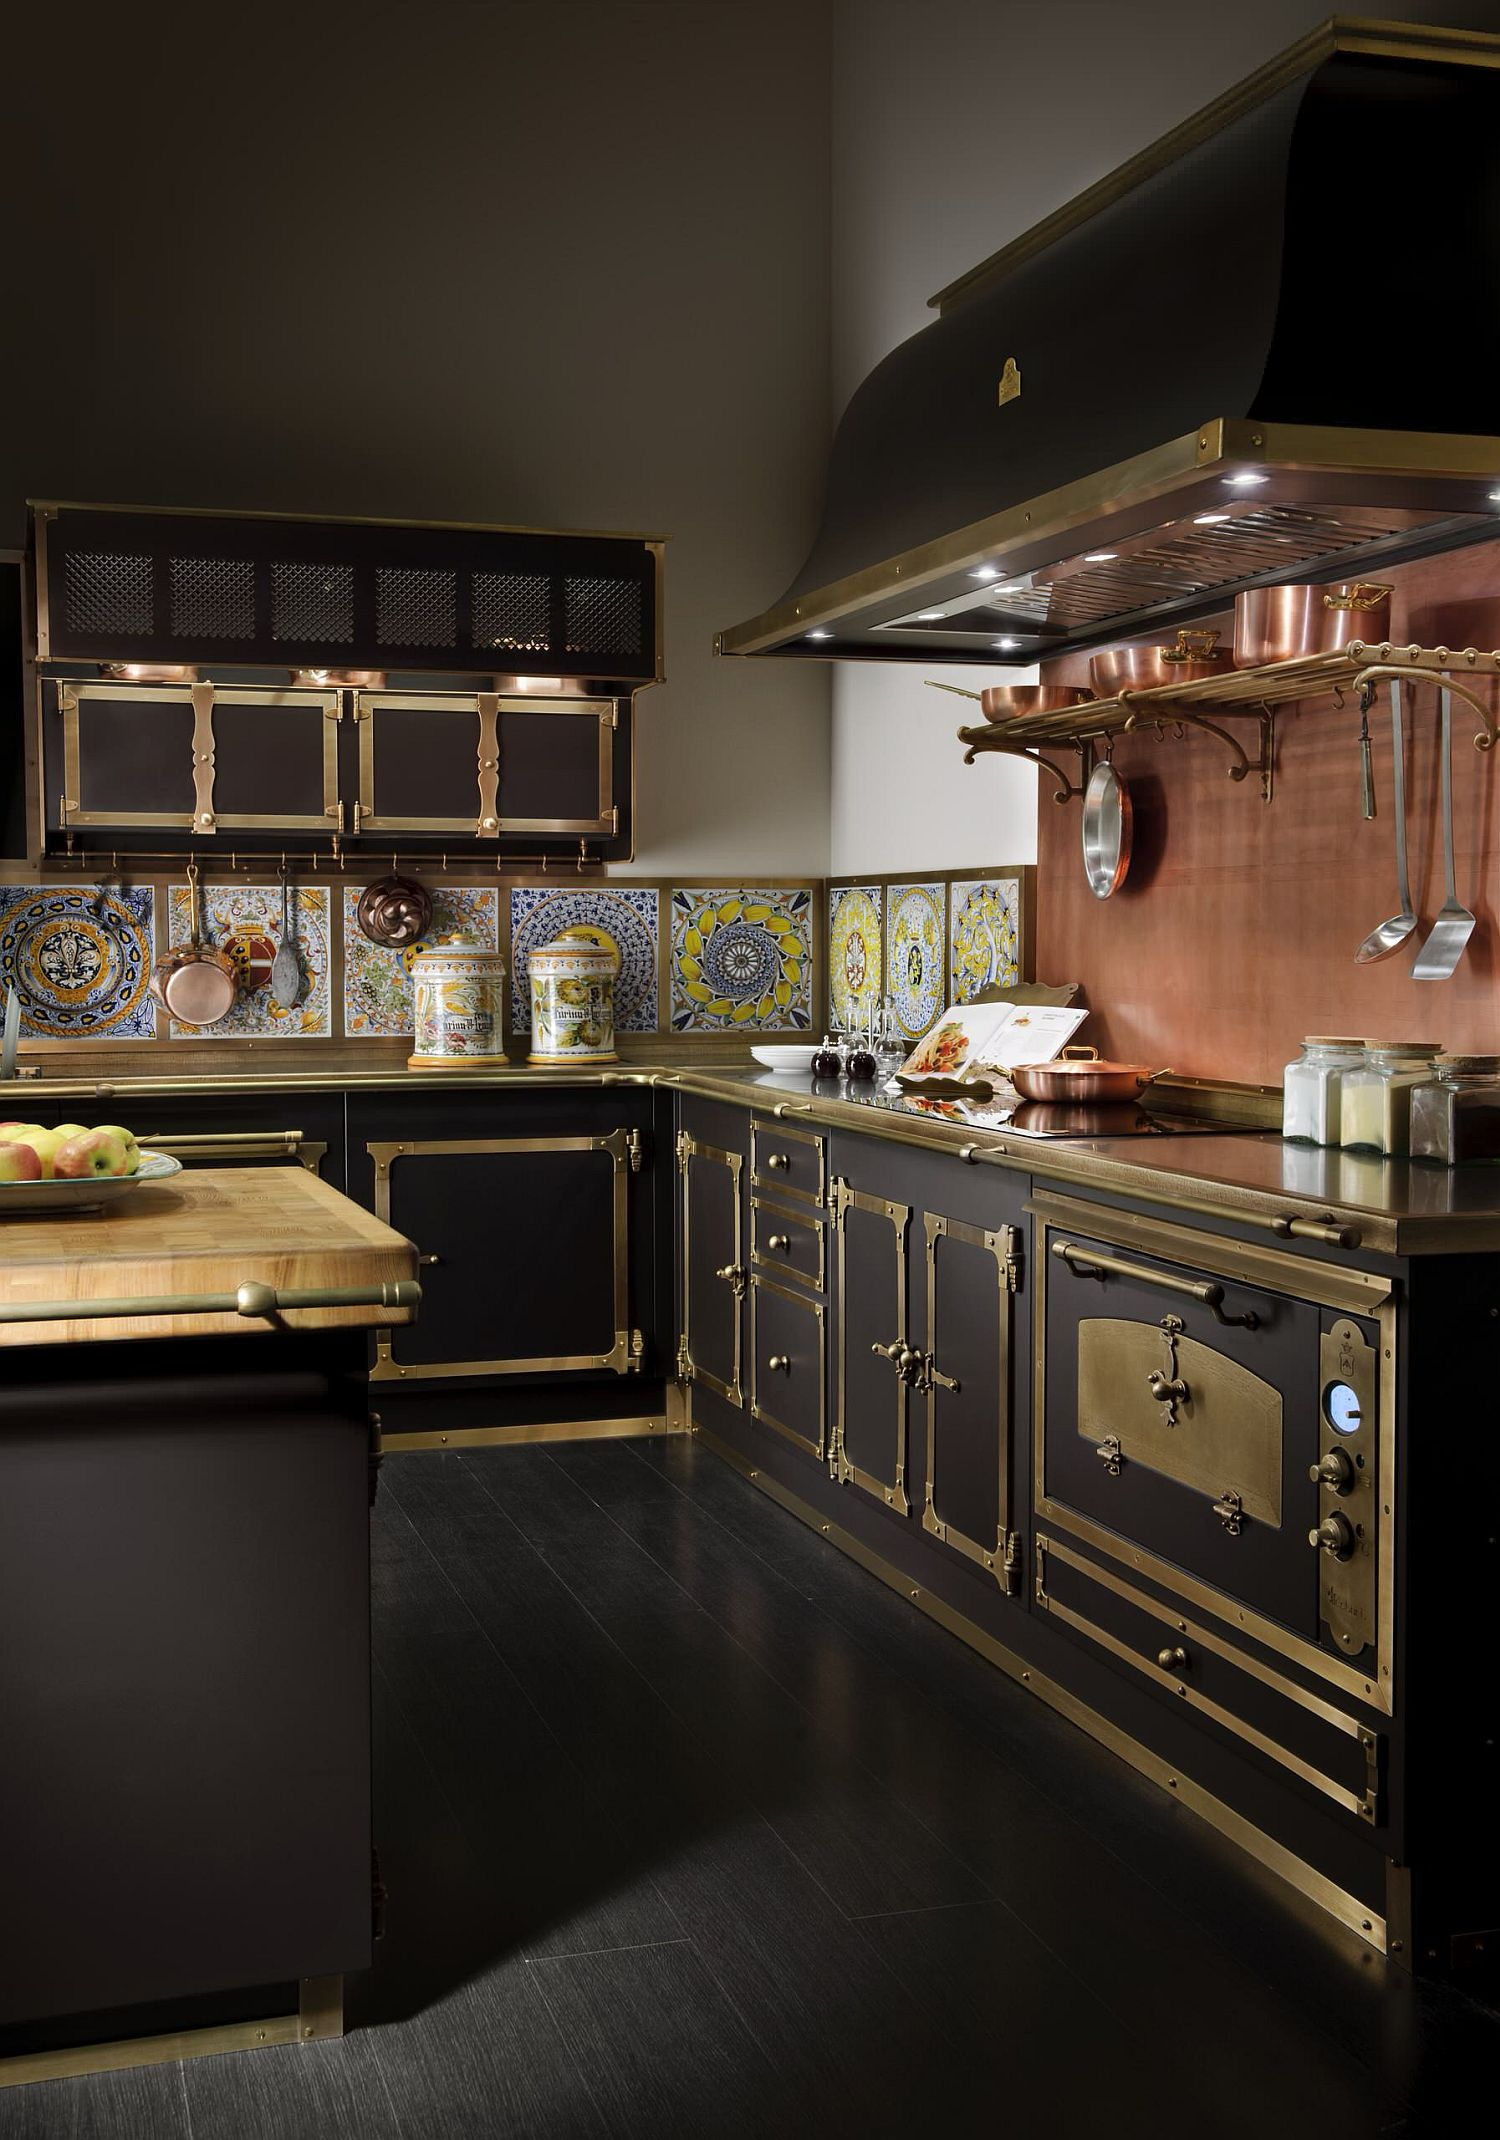 Copper and black custom kitchen range shapes this cool modern Victorian kitchen